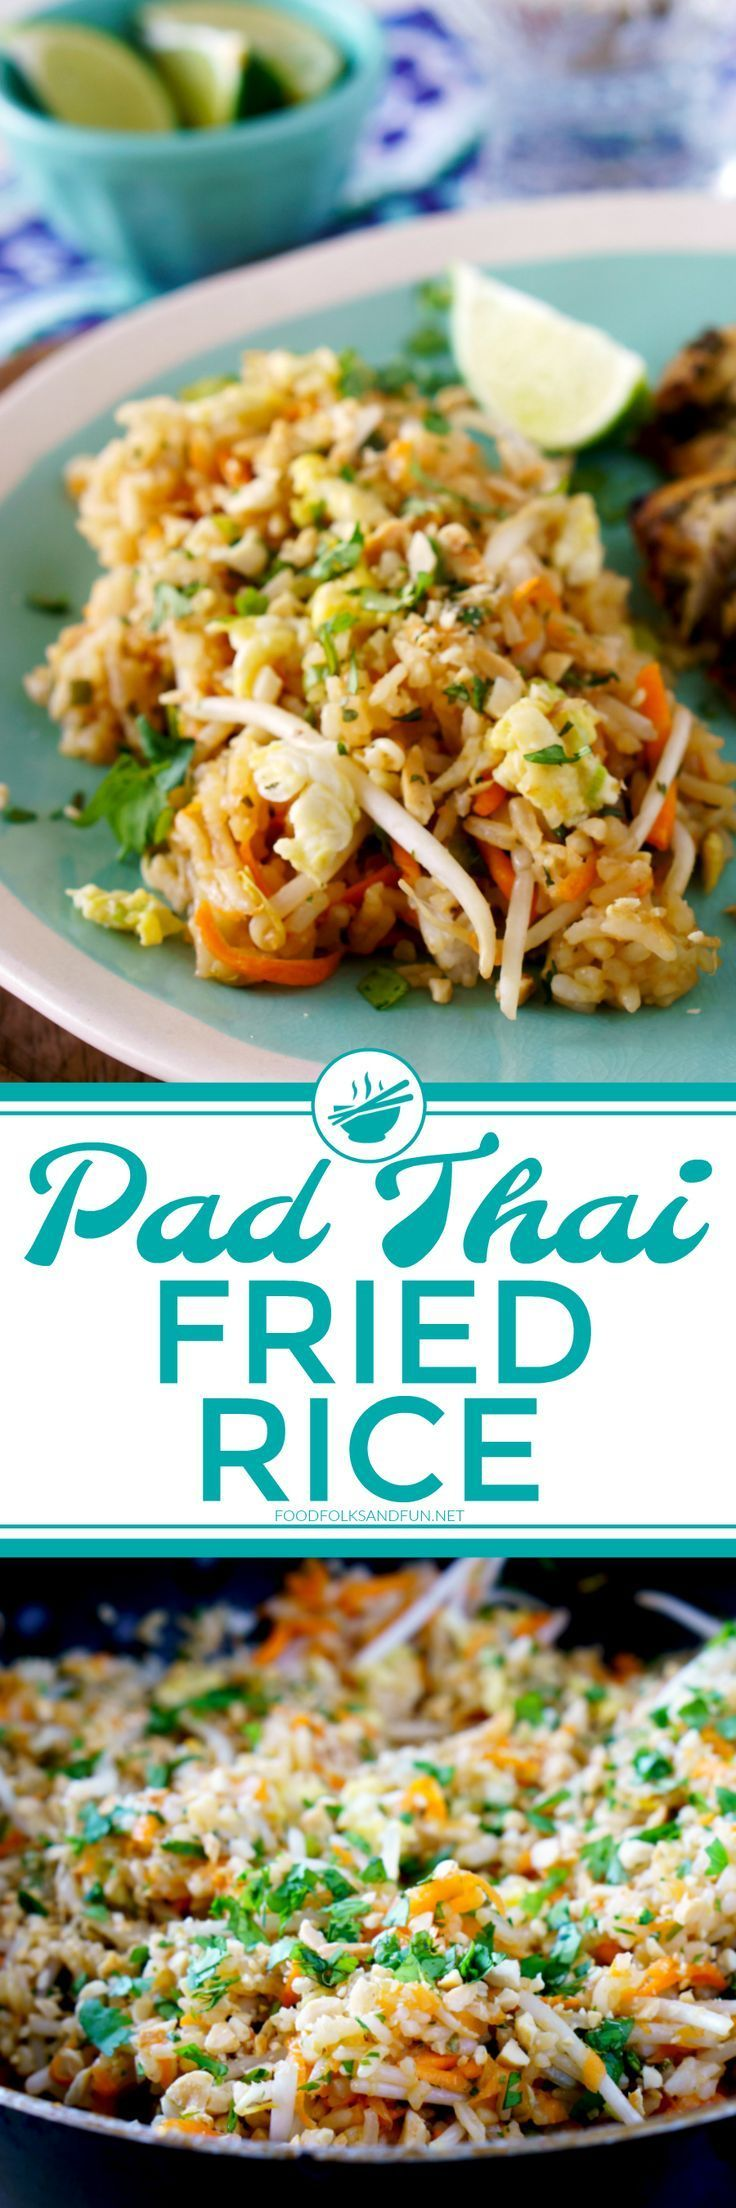 213 best Rice (Nasi Goreng, Yakimeshi, and other Fried Rice Dishes ...